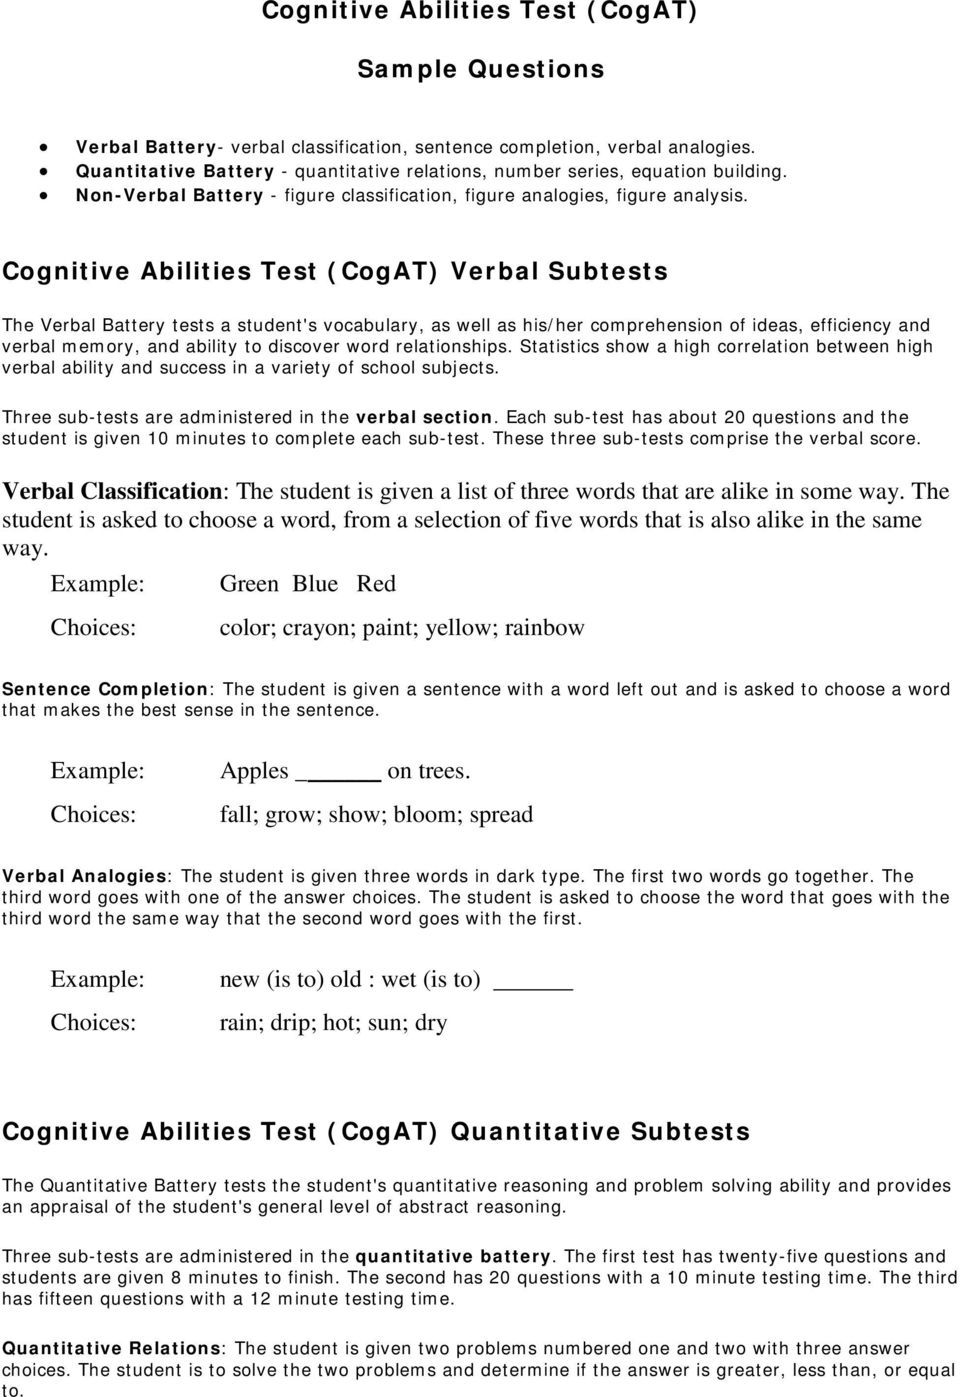 Cognitive Abilities Test (CogAT) Verbal Subtests The Verbal Battery tests a student's vocabulary, as well as his/her comprehension of ideas, efficiency and verbal memory, and ability to discover word